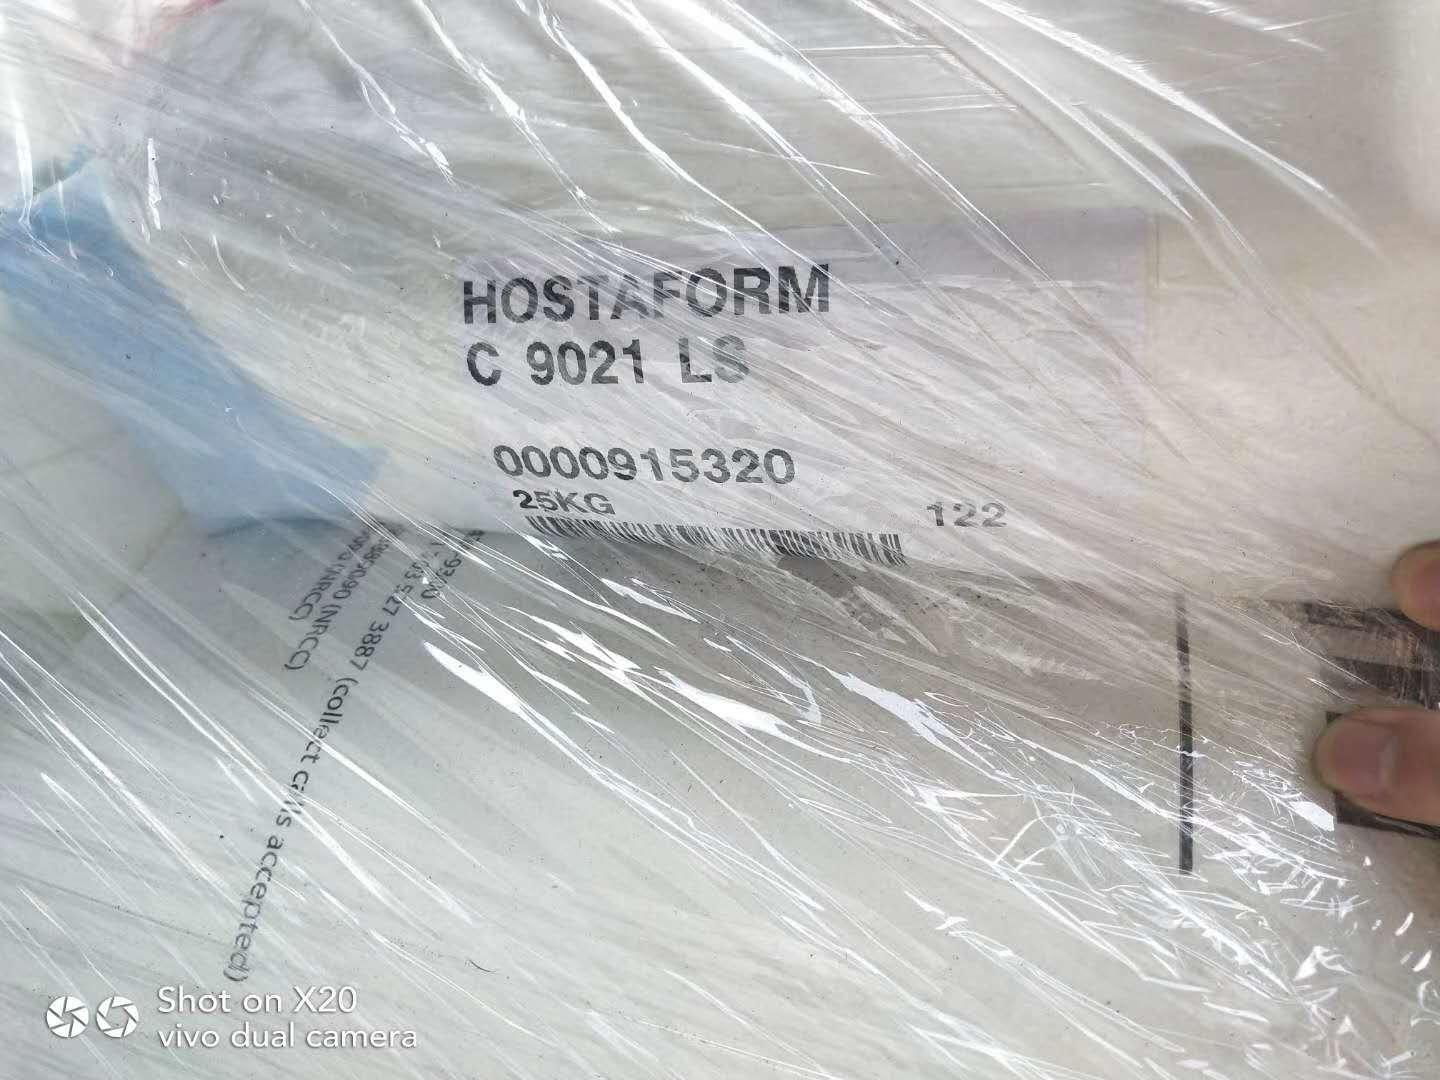 HOSTAFORM C9021LS